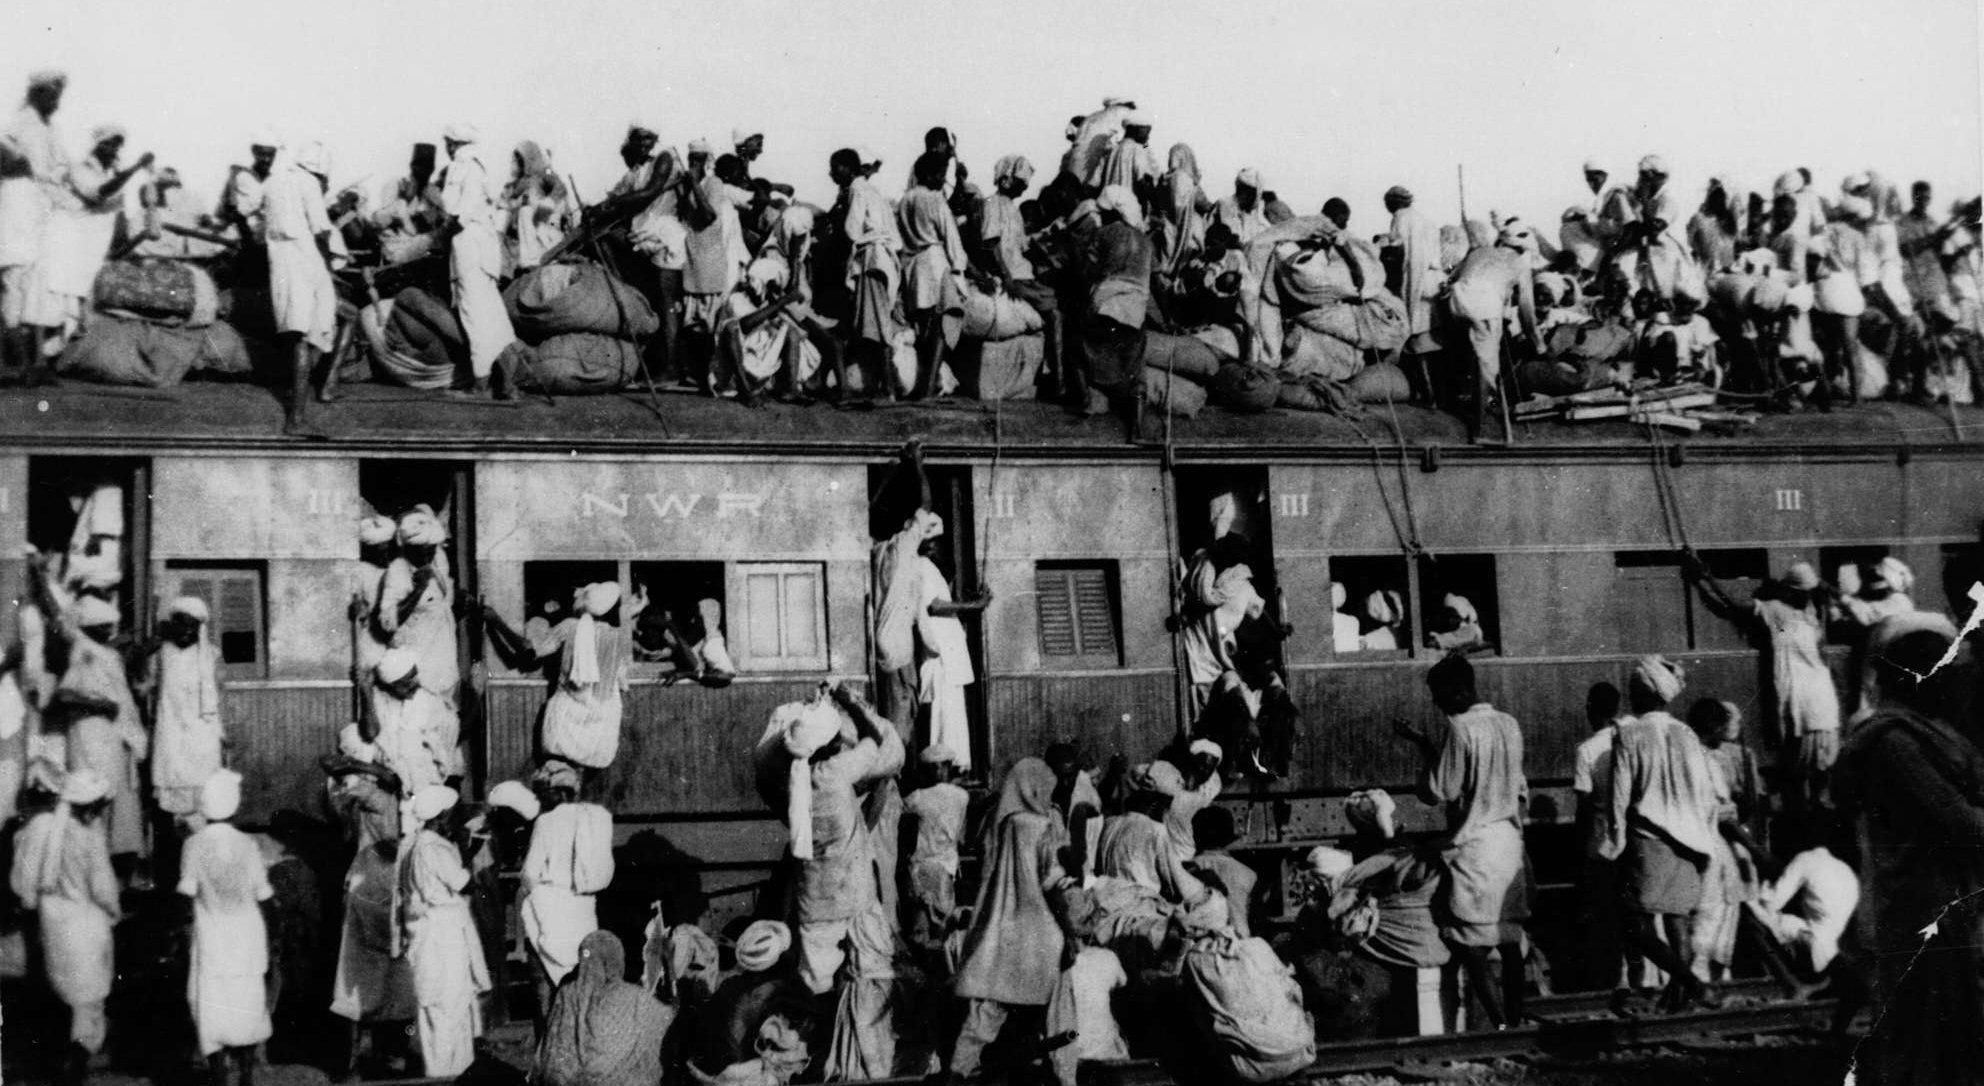 Scenes of Indian partition, 1947